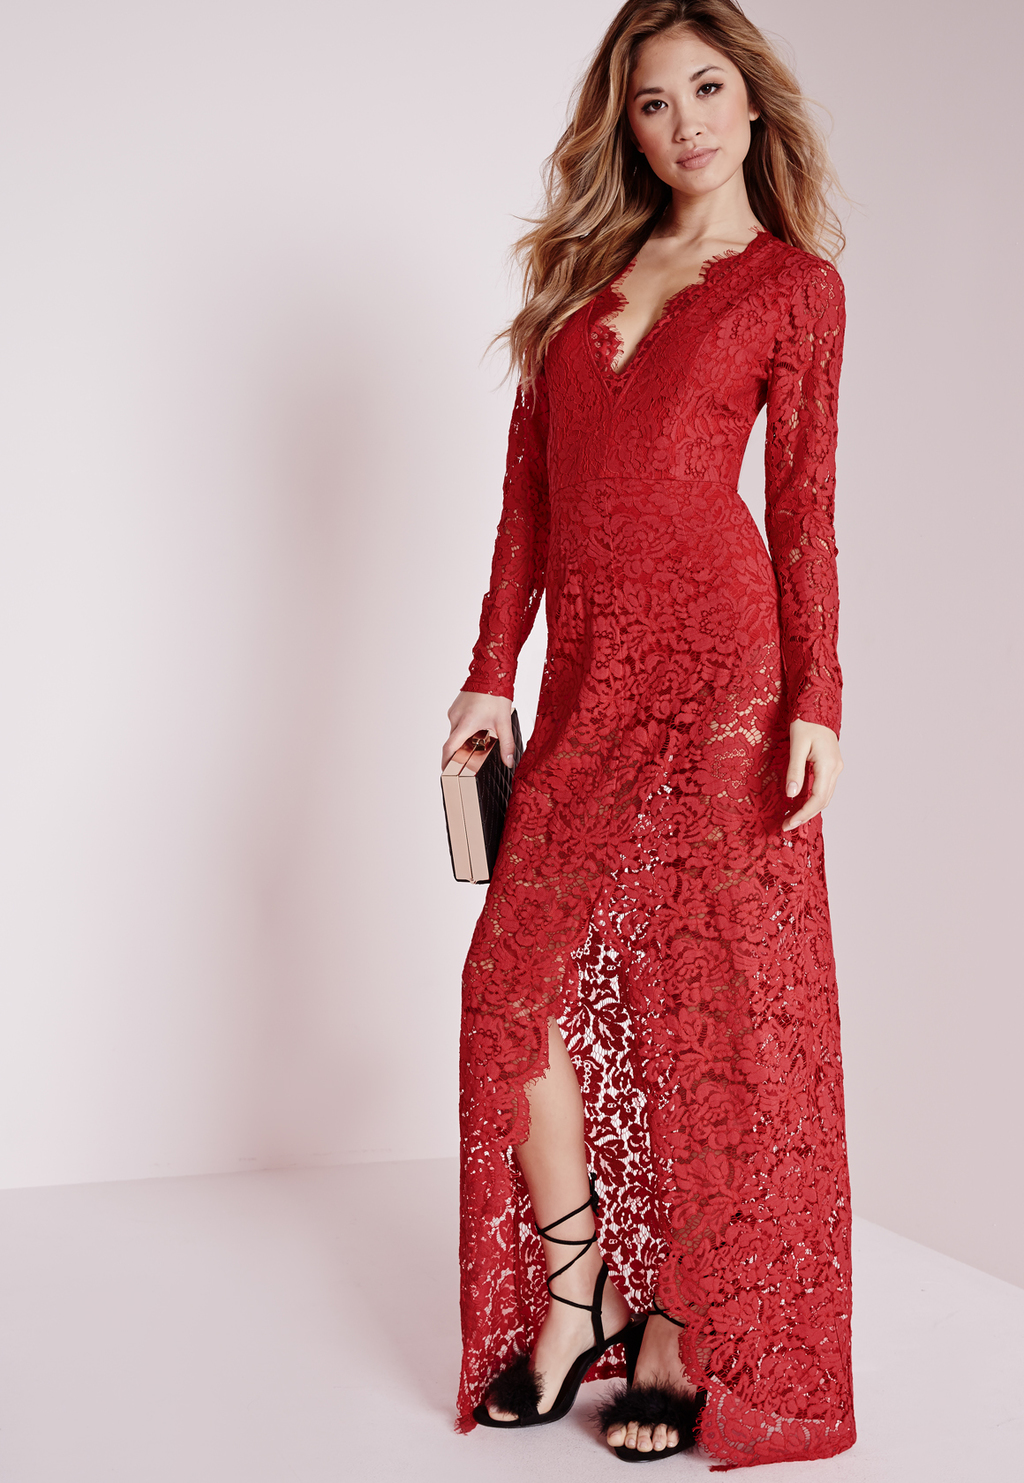 Plunge Lace Maxi Dress Red, Red - neckline: plunge; fit: tailored/fitted; style: maxi dress; predominant colour: true red; length: floor length; fibres: polyester/polyamide - 100%; occasions: occasion; sleeve length: long sleeve; sleeve style: standard; texture group: lace; pattern type: fabric; pattern size: standard; pattern: patterned/print; season: a/w 2015; wardrobe: event